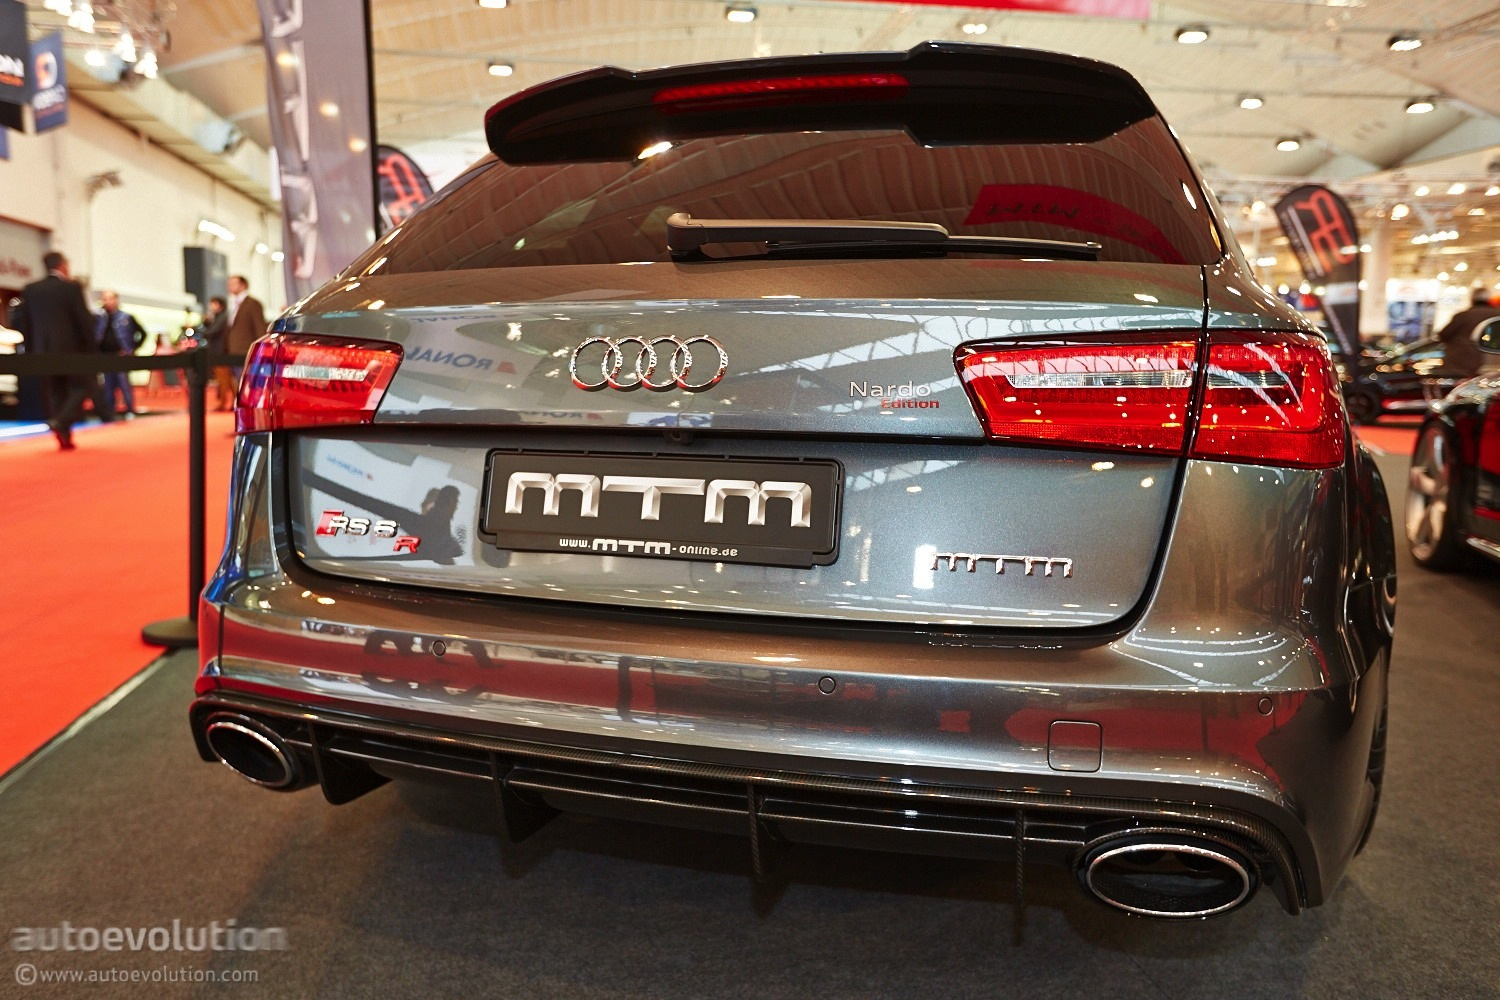 2015 Audi Q5 >> 722 HP Audi RS6 by MTM Shows Up at Essen Motor Show 2013 [Live Photos] - autoevolution